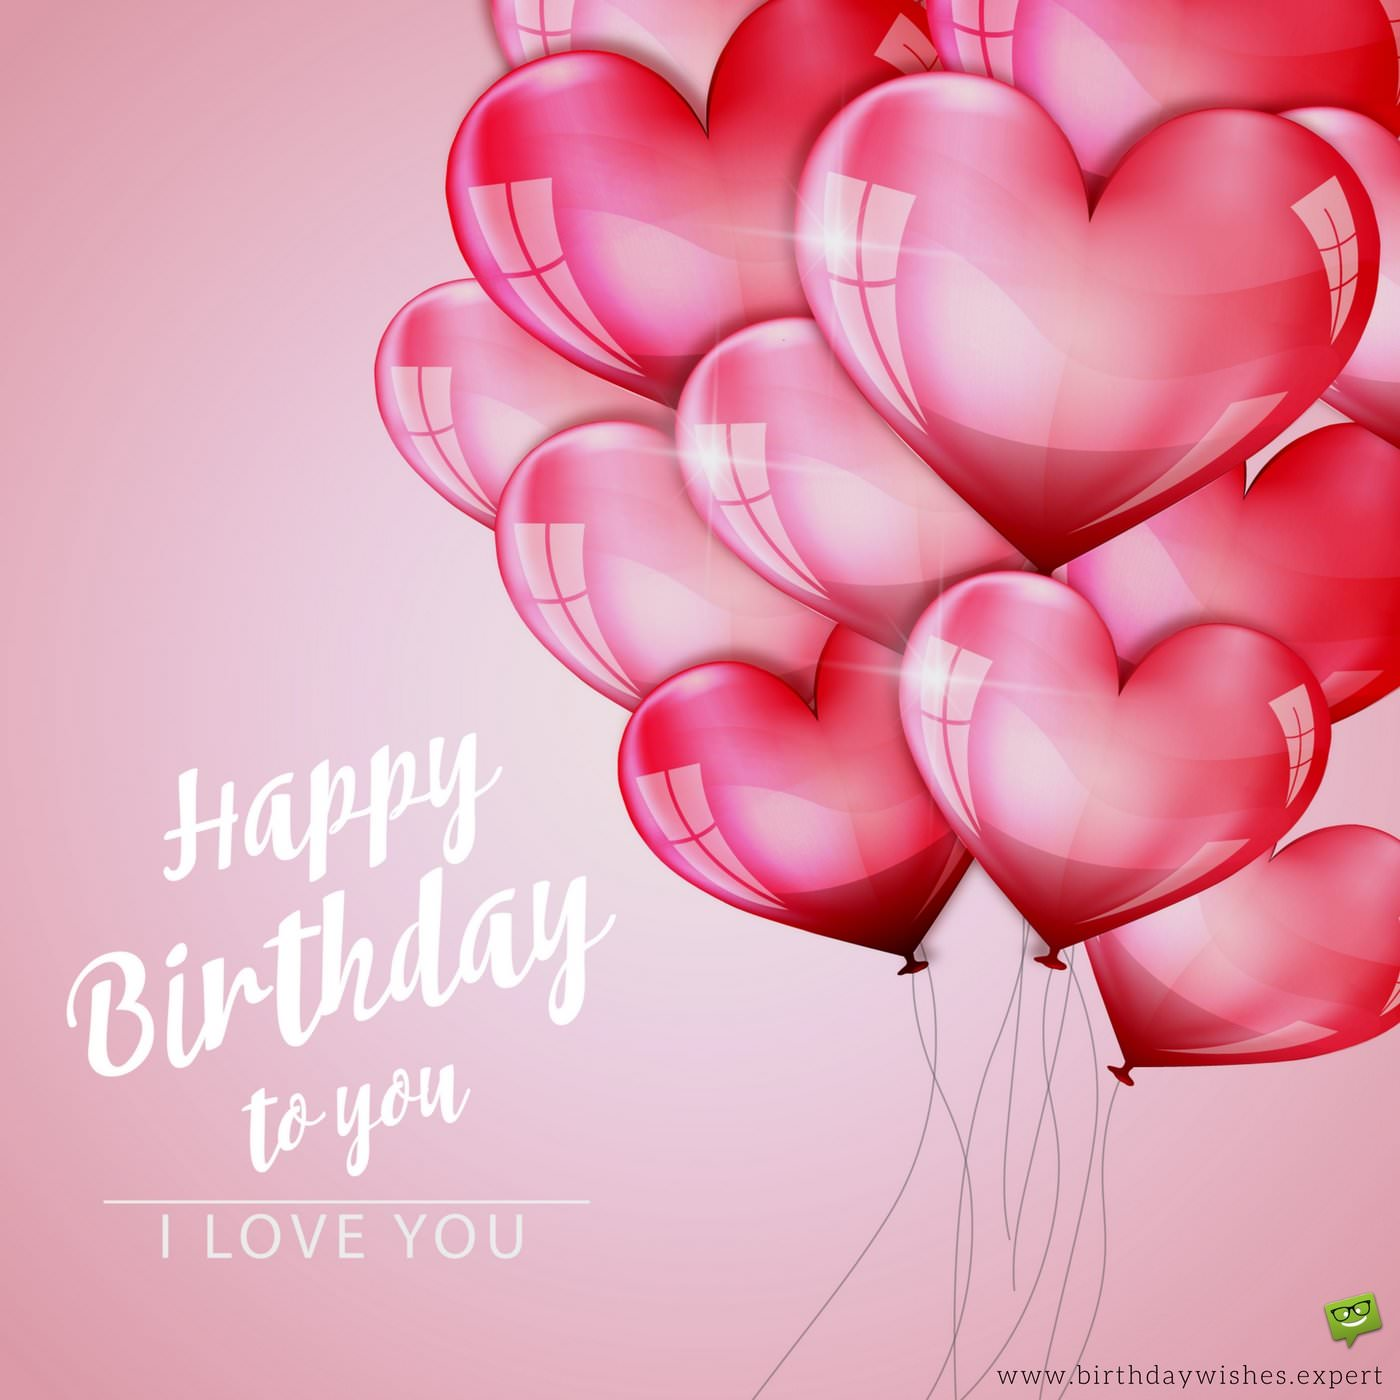 best way to wish happy birthday to girlfriend on facebook ; Birthday-wish-for-girlfriend-on-image-with-heart-shaped-love-balloons